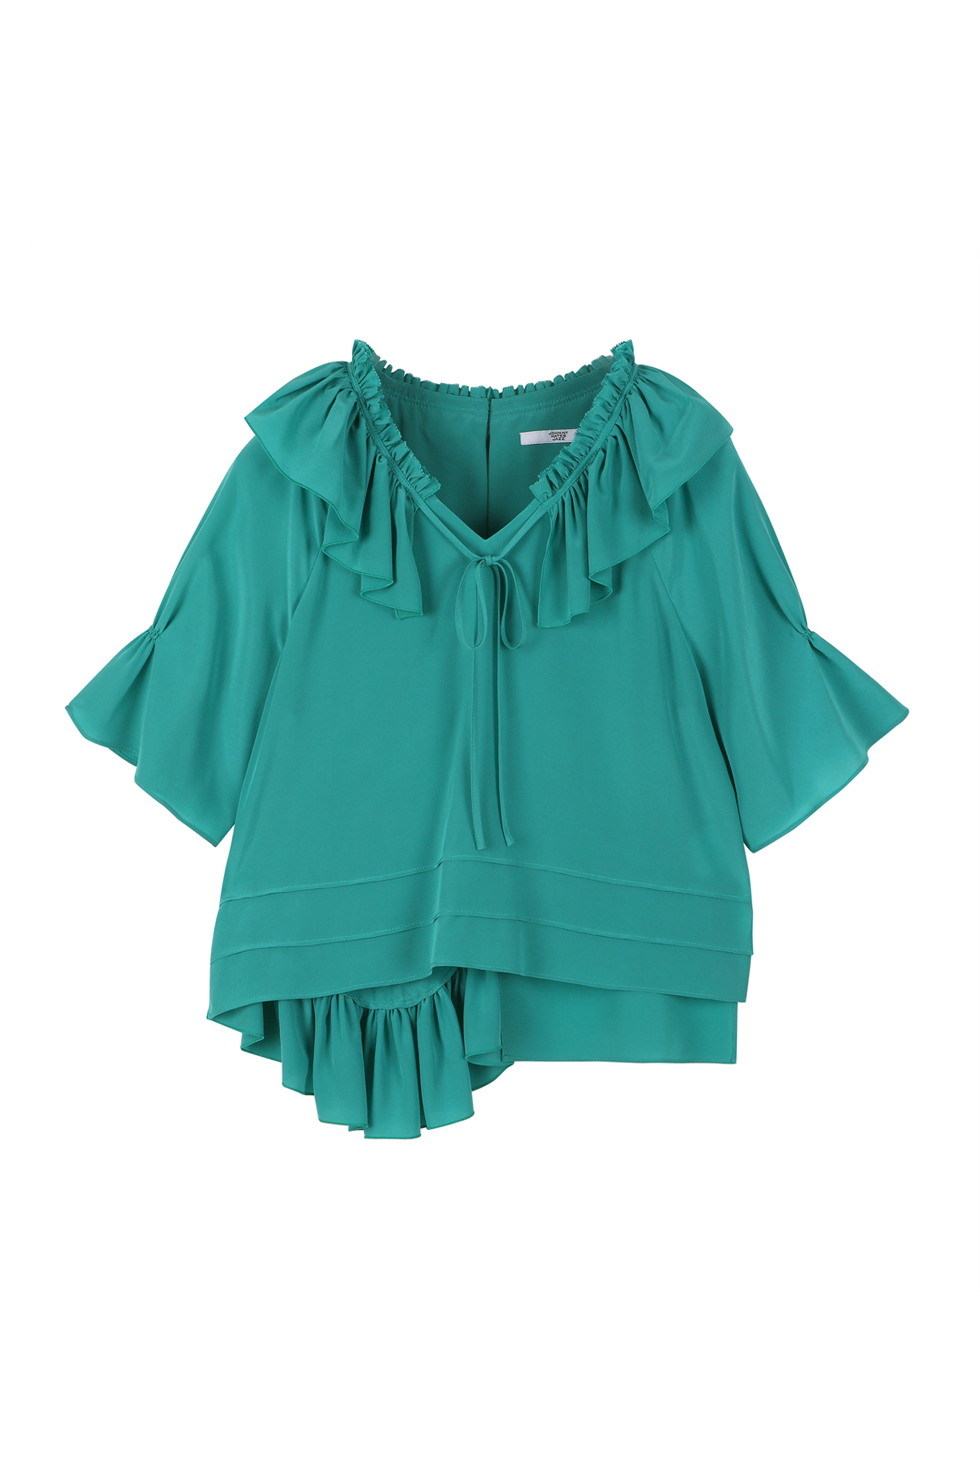 SILK RUFFLE BLOUSE - GREEN